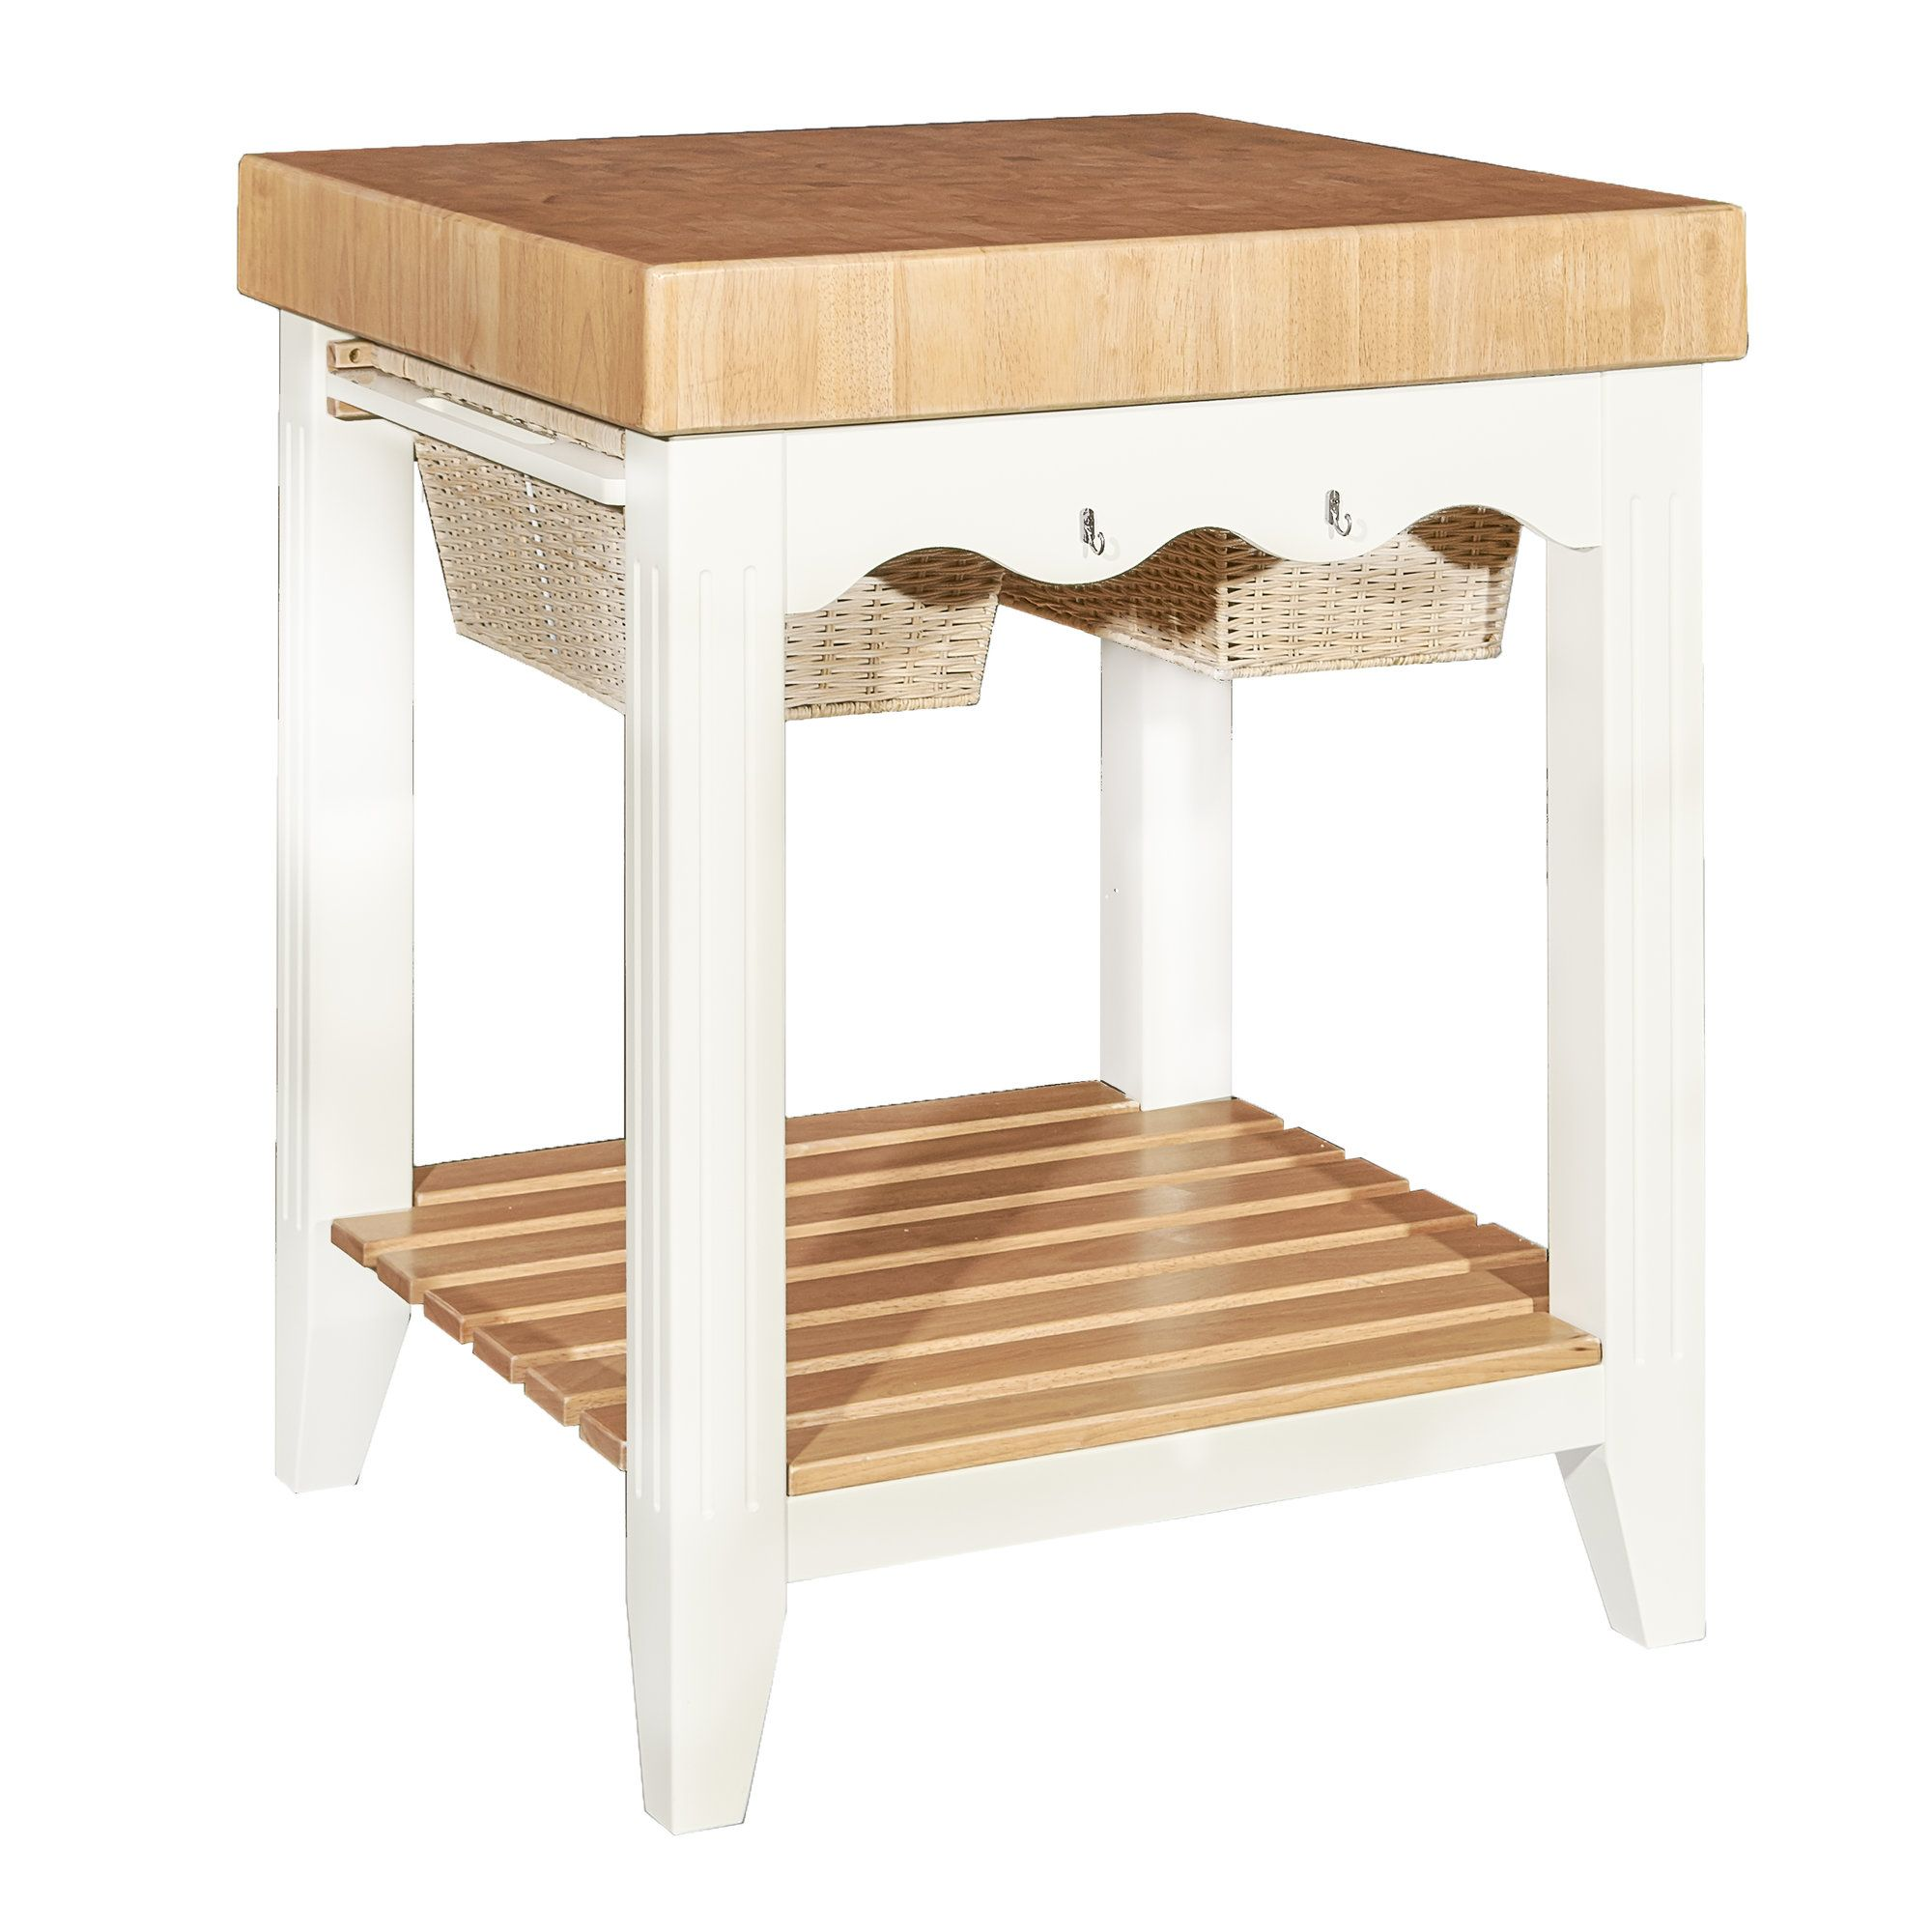 Marlee butcher block butcher blocks and products